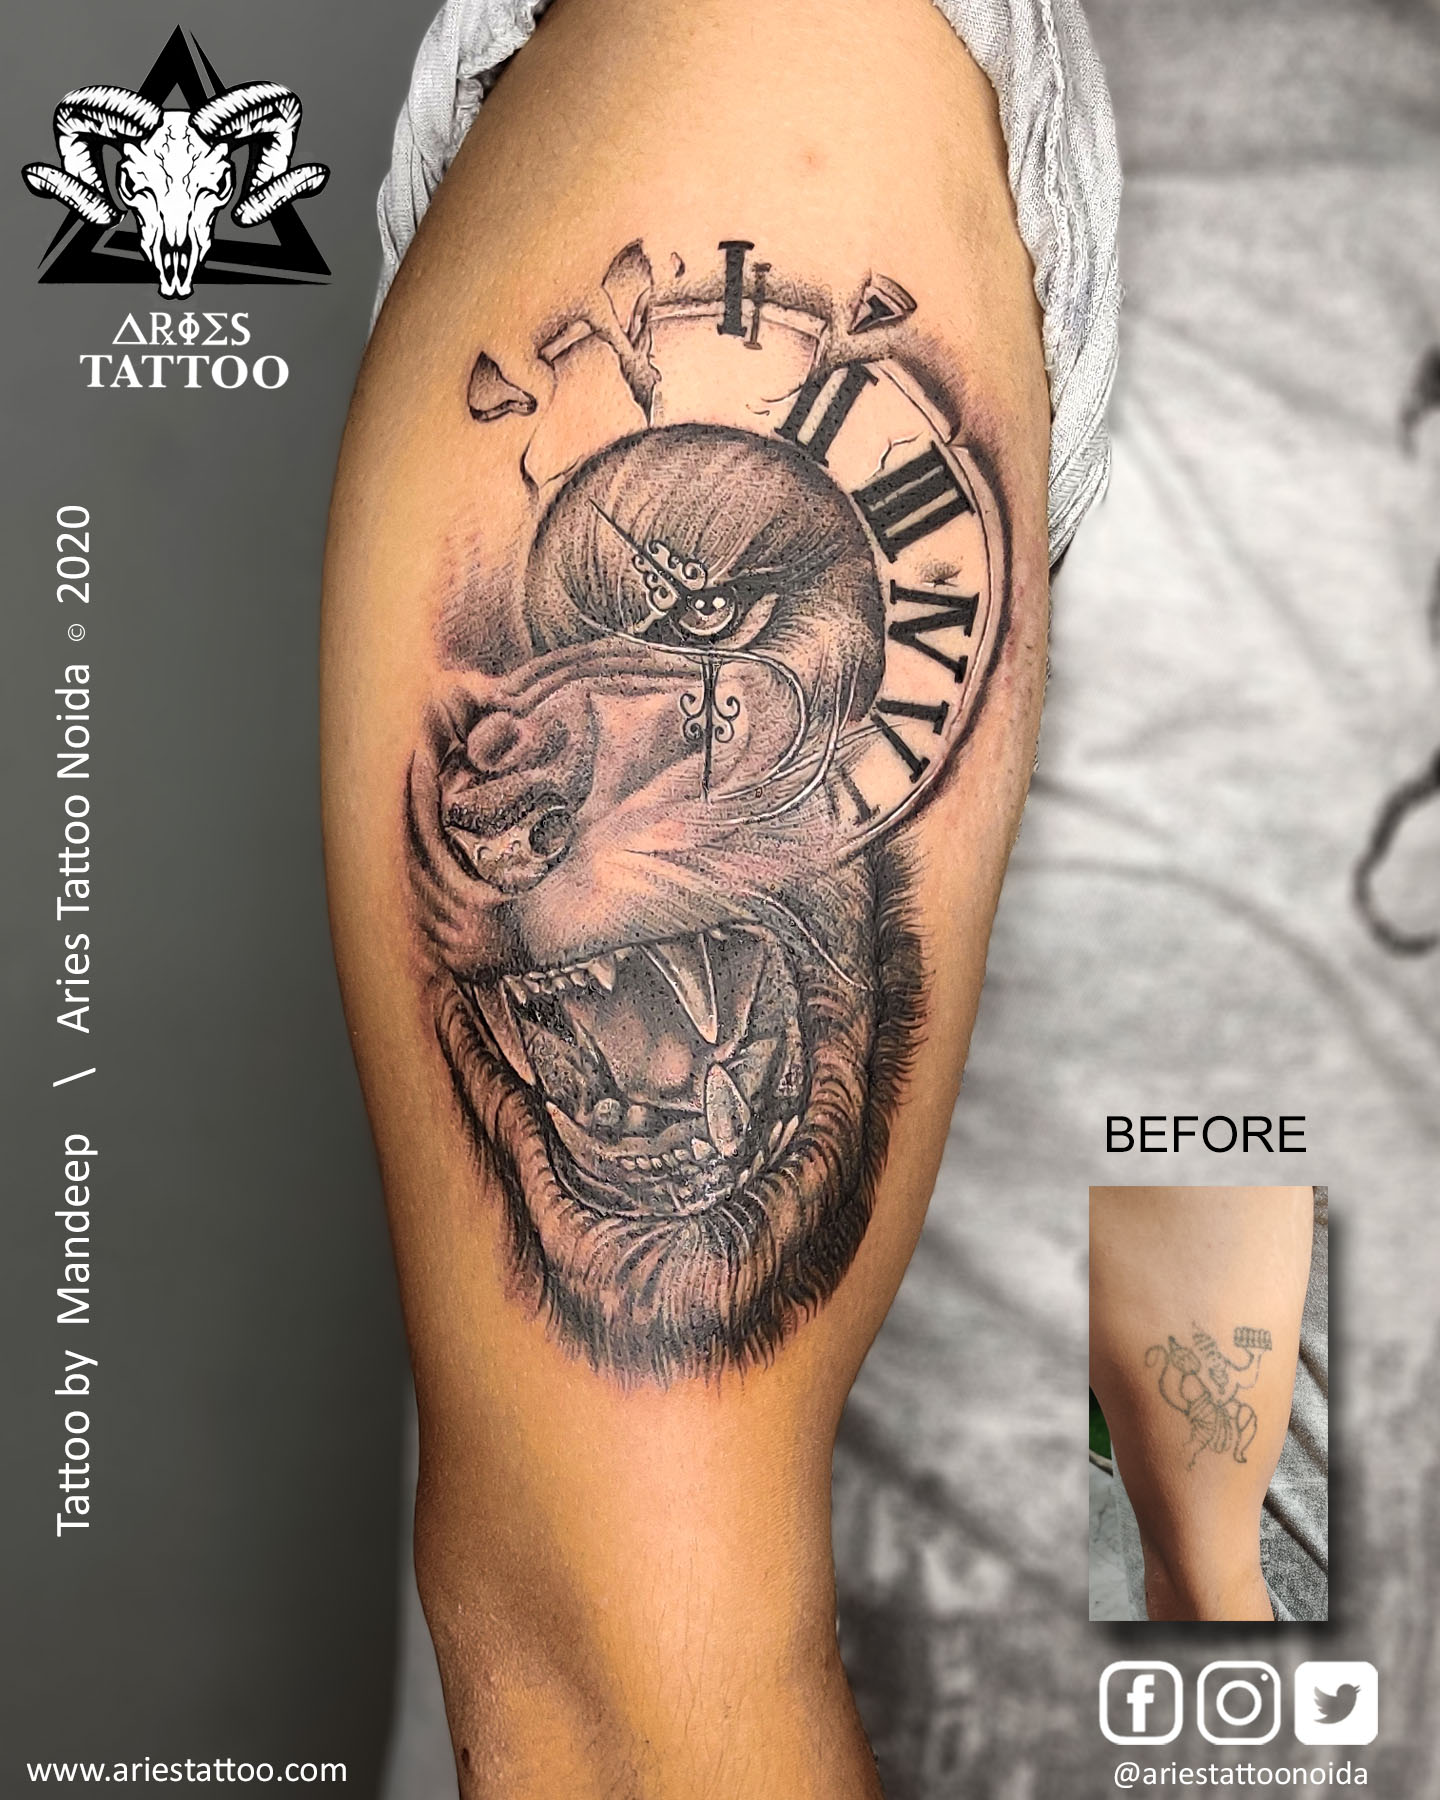 Coverup lion tattoo_mandeep |Aries Tattoo Noida | Tattoo Shop and Studio In Noida